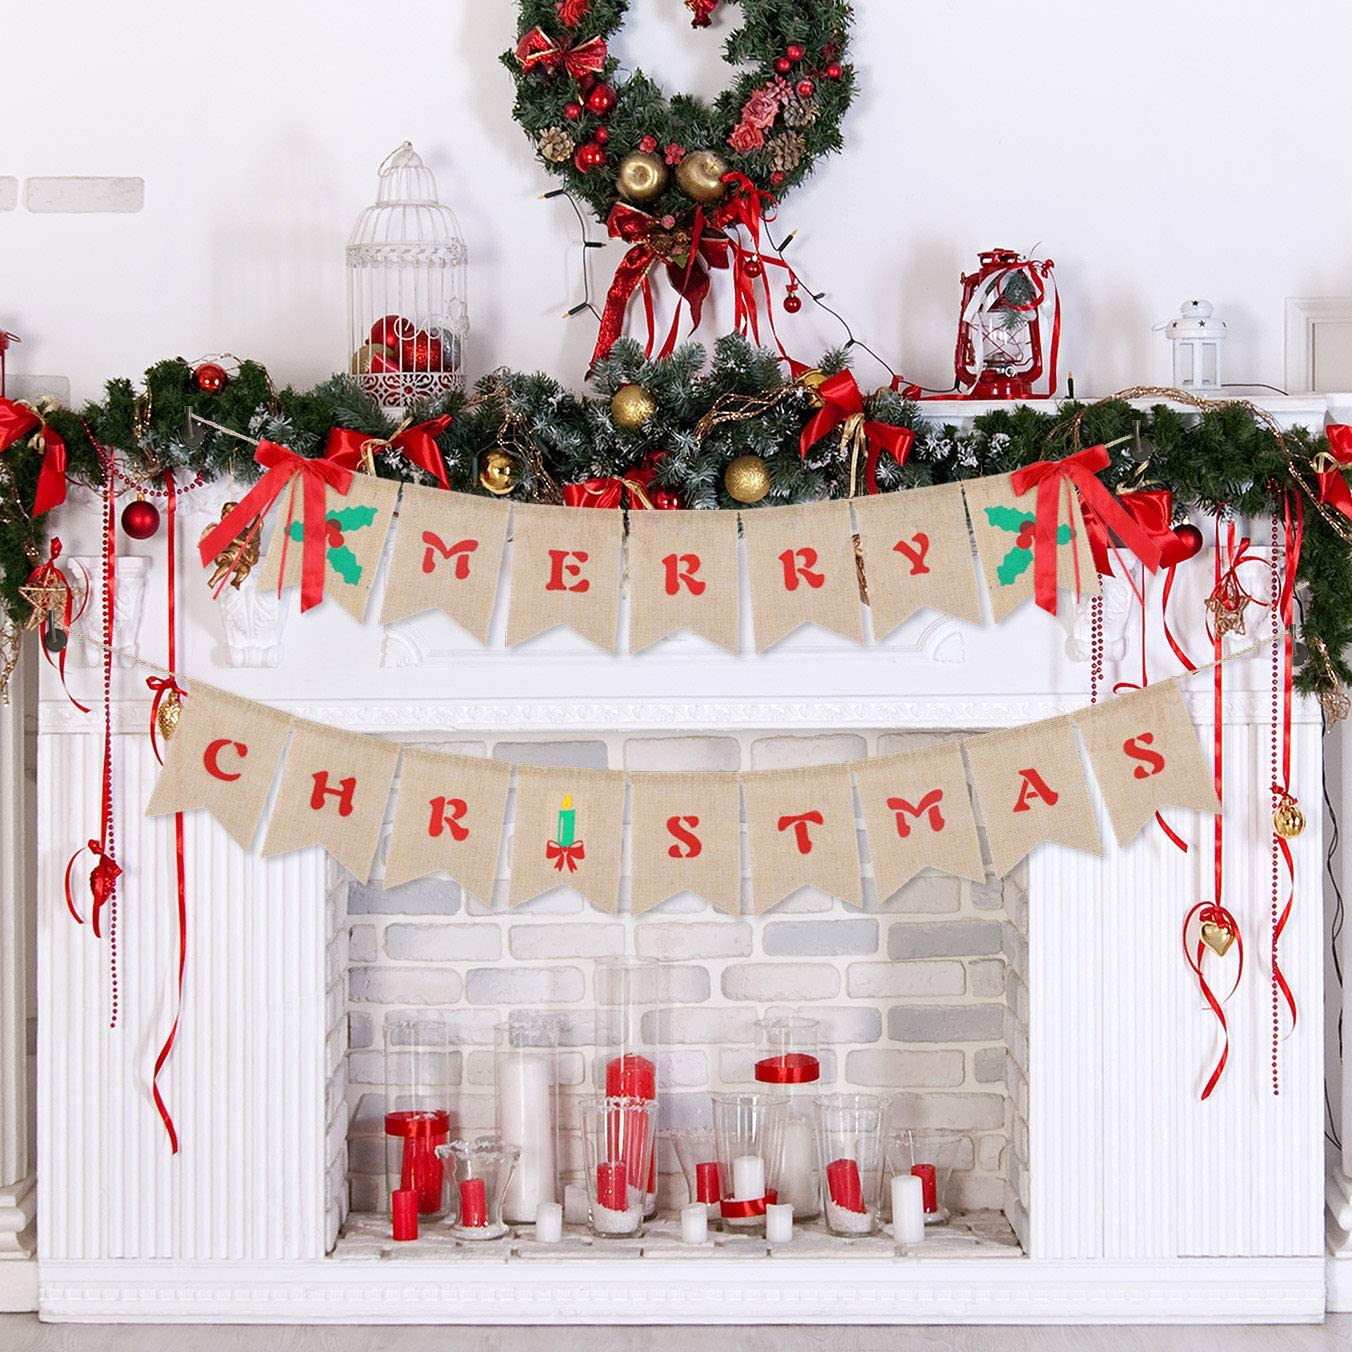 Merry Christmas Banner Burlap Indoor Decorations Farmhouse Home Rustic Wall Decor for Vintage Mantel Fireplace Xmas Tree